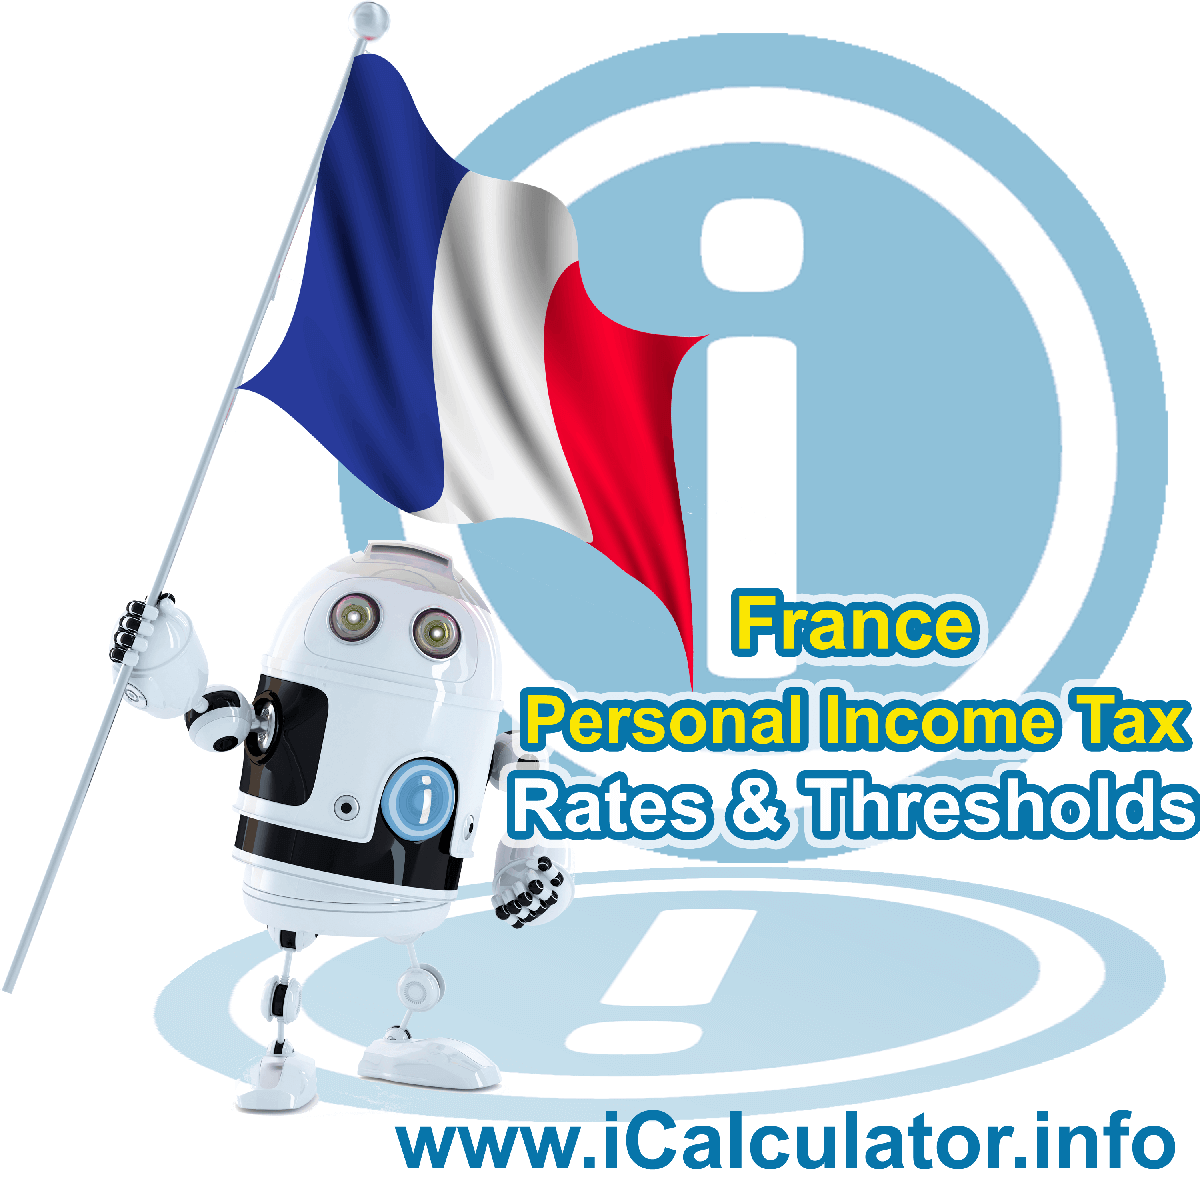 France Salary Calculator. This image shows the Franceese flag and information relating to the tax formula for the France Tax Calculator